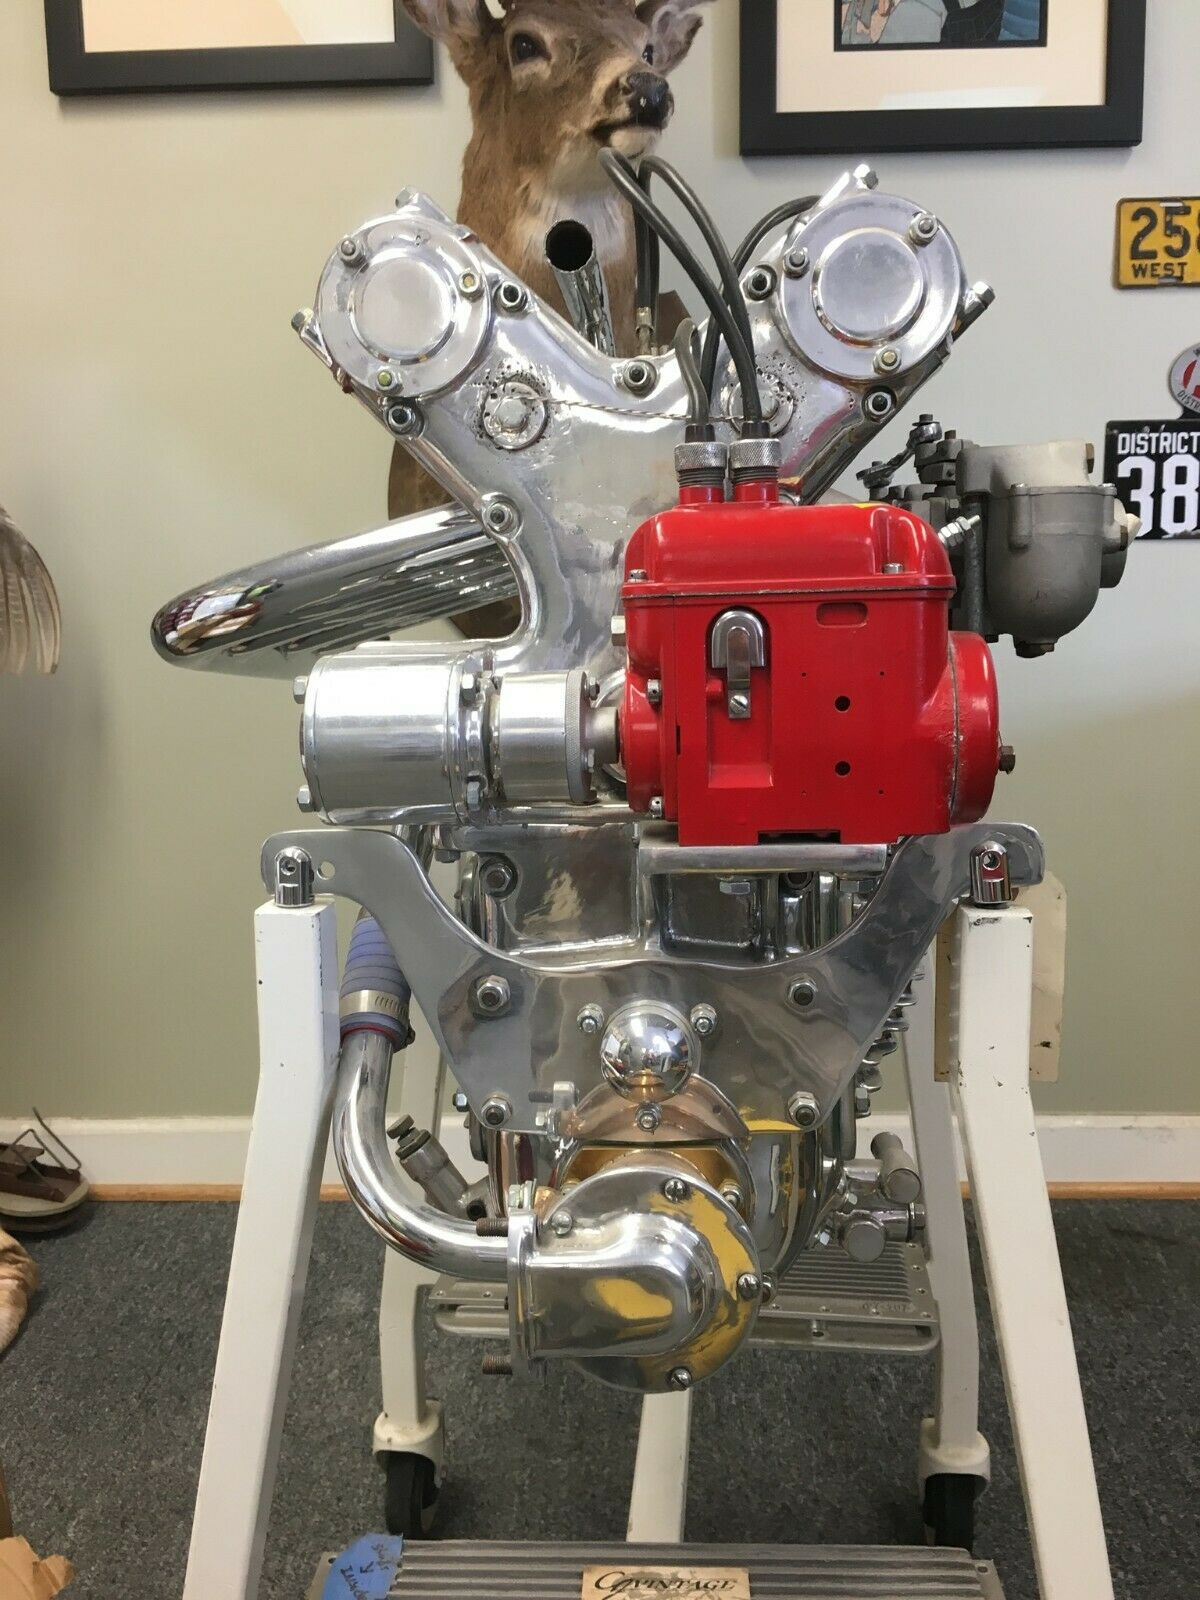 Little Giant: This 110ci Offenhauser Engine Needs A Vintage Midget To Land In Stat!